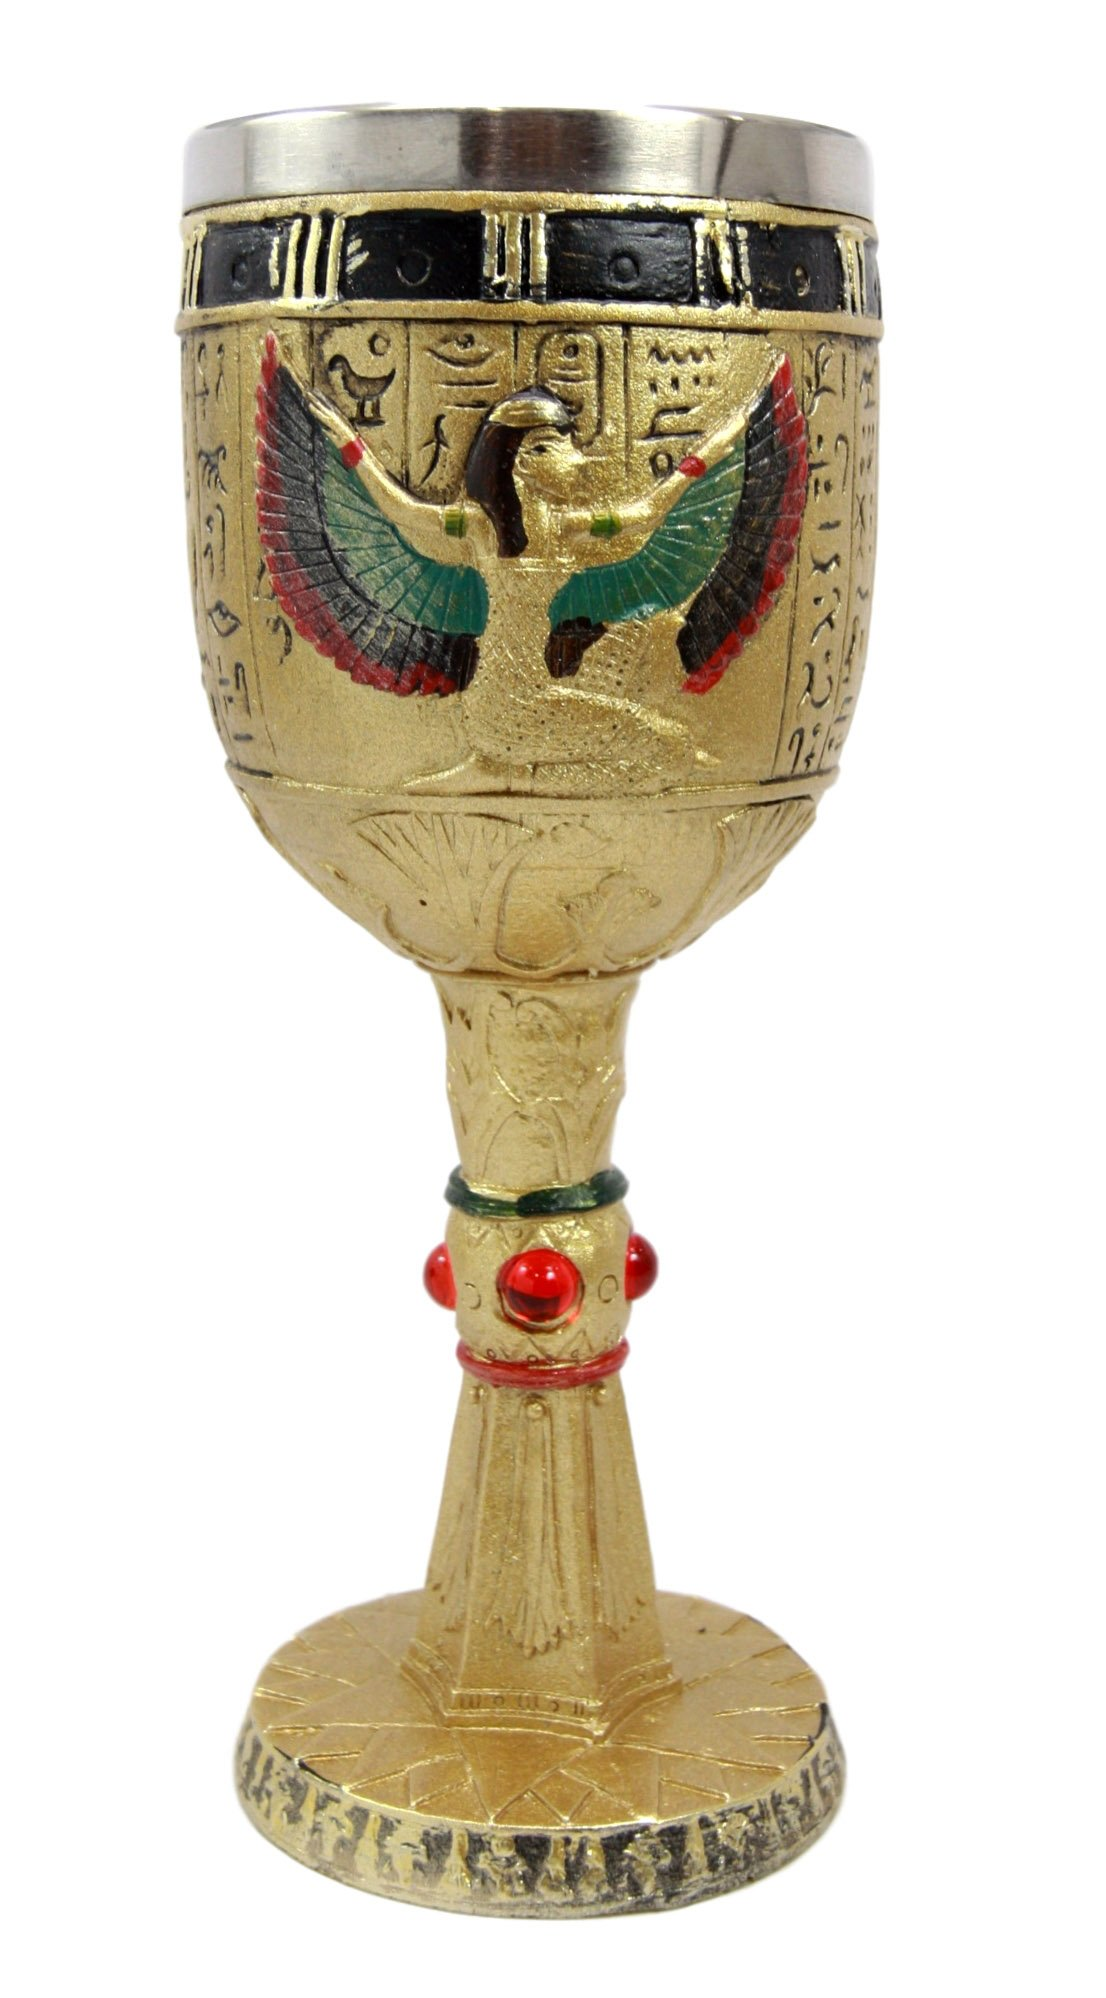 Egyptian Collectible Magical Goddess Of Wisdom Isis With Open Wings 6oz Resin Wine Goblet Chalice With Stainless Steel Liner 7.25''H